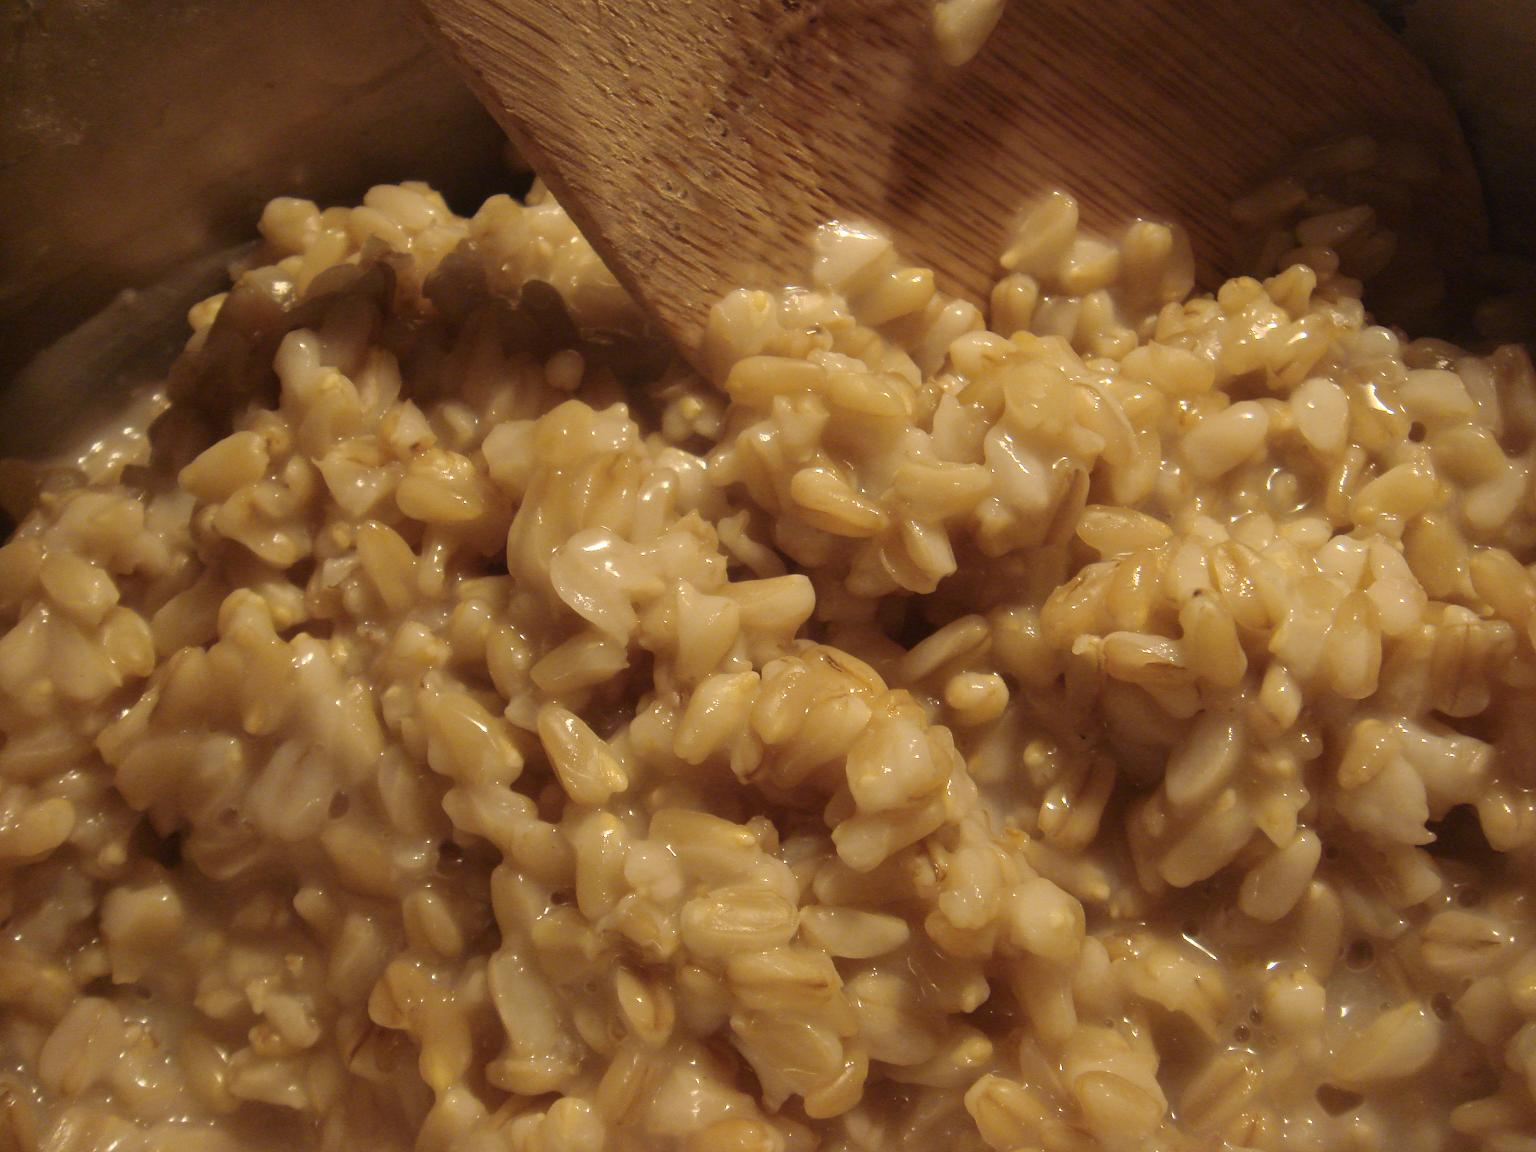 Simple Morning Oat Groats Recipe With Walnuts and Raisins